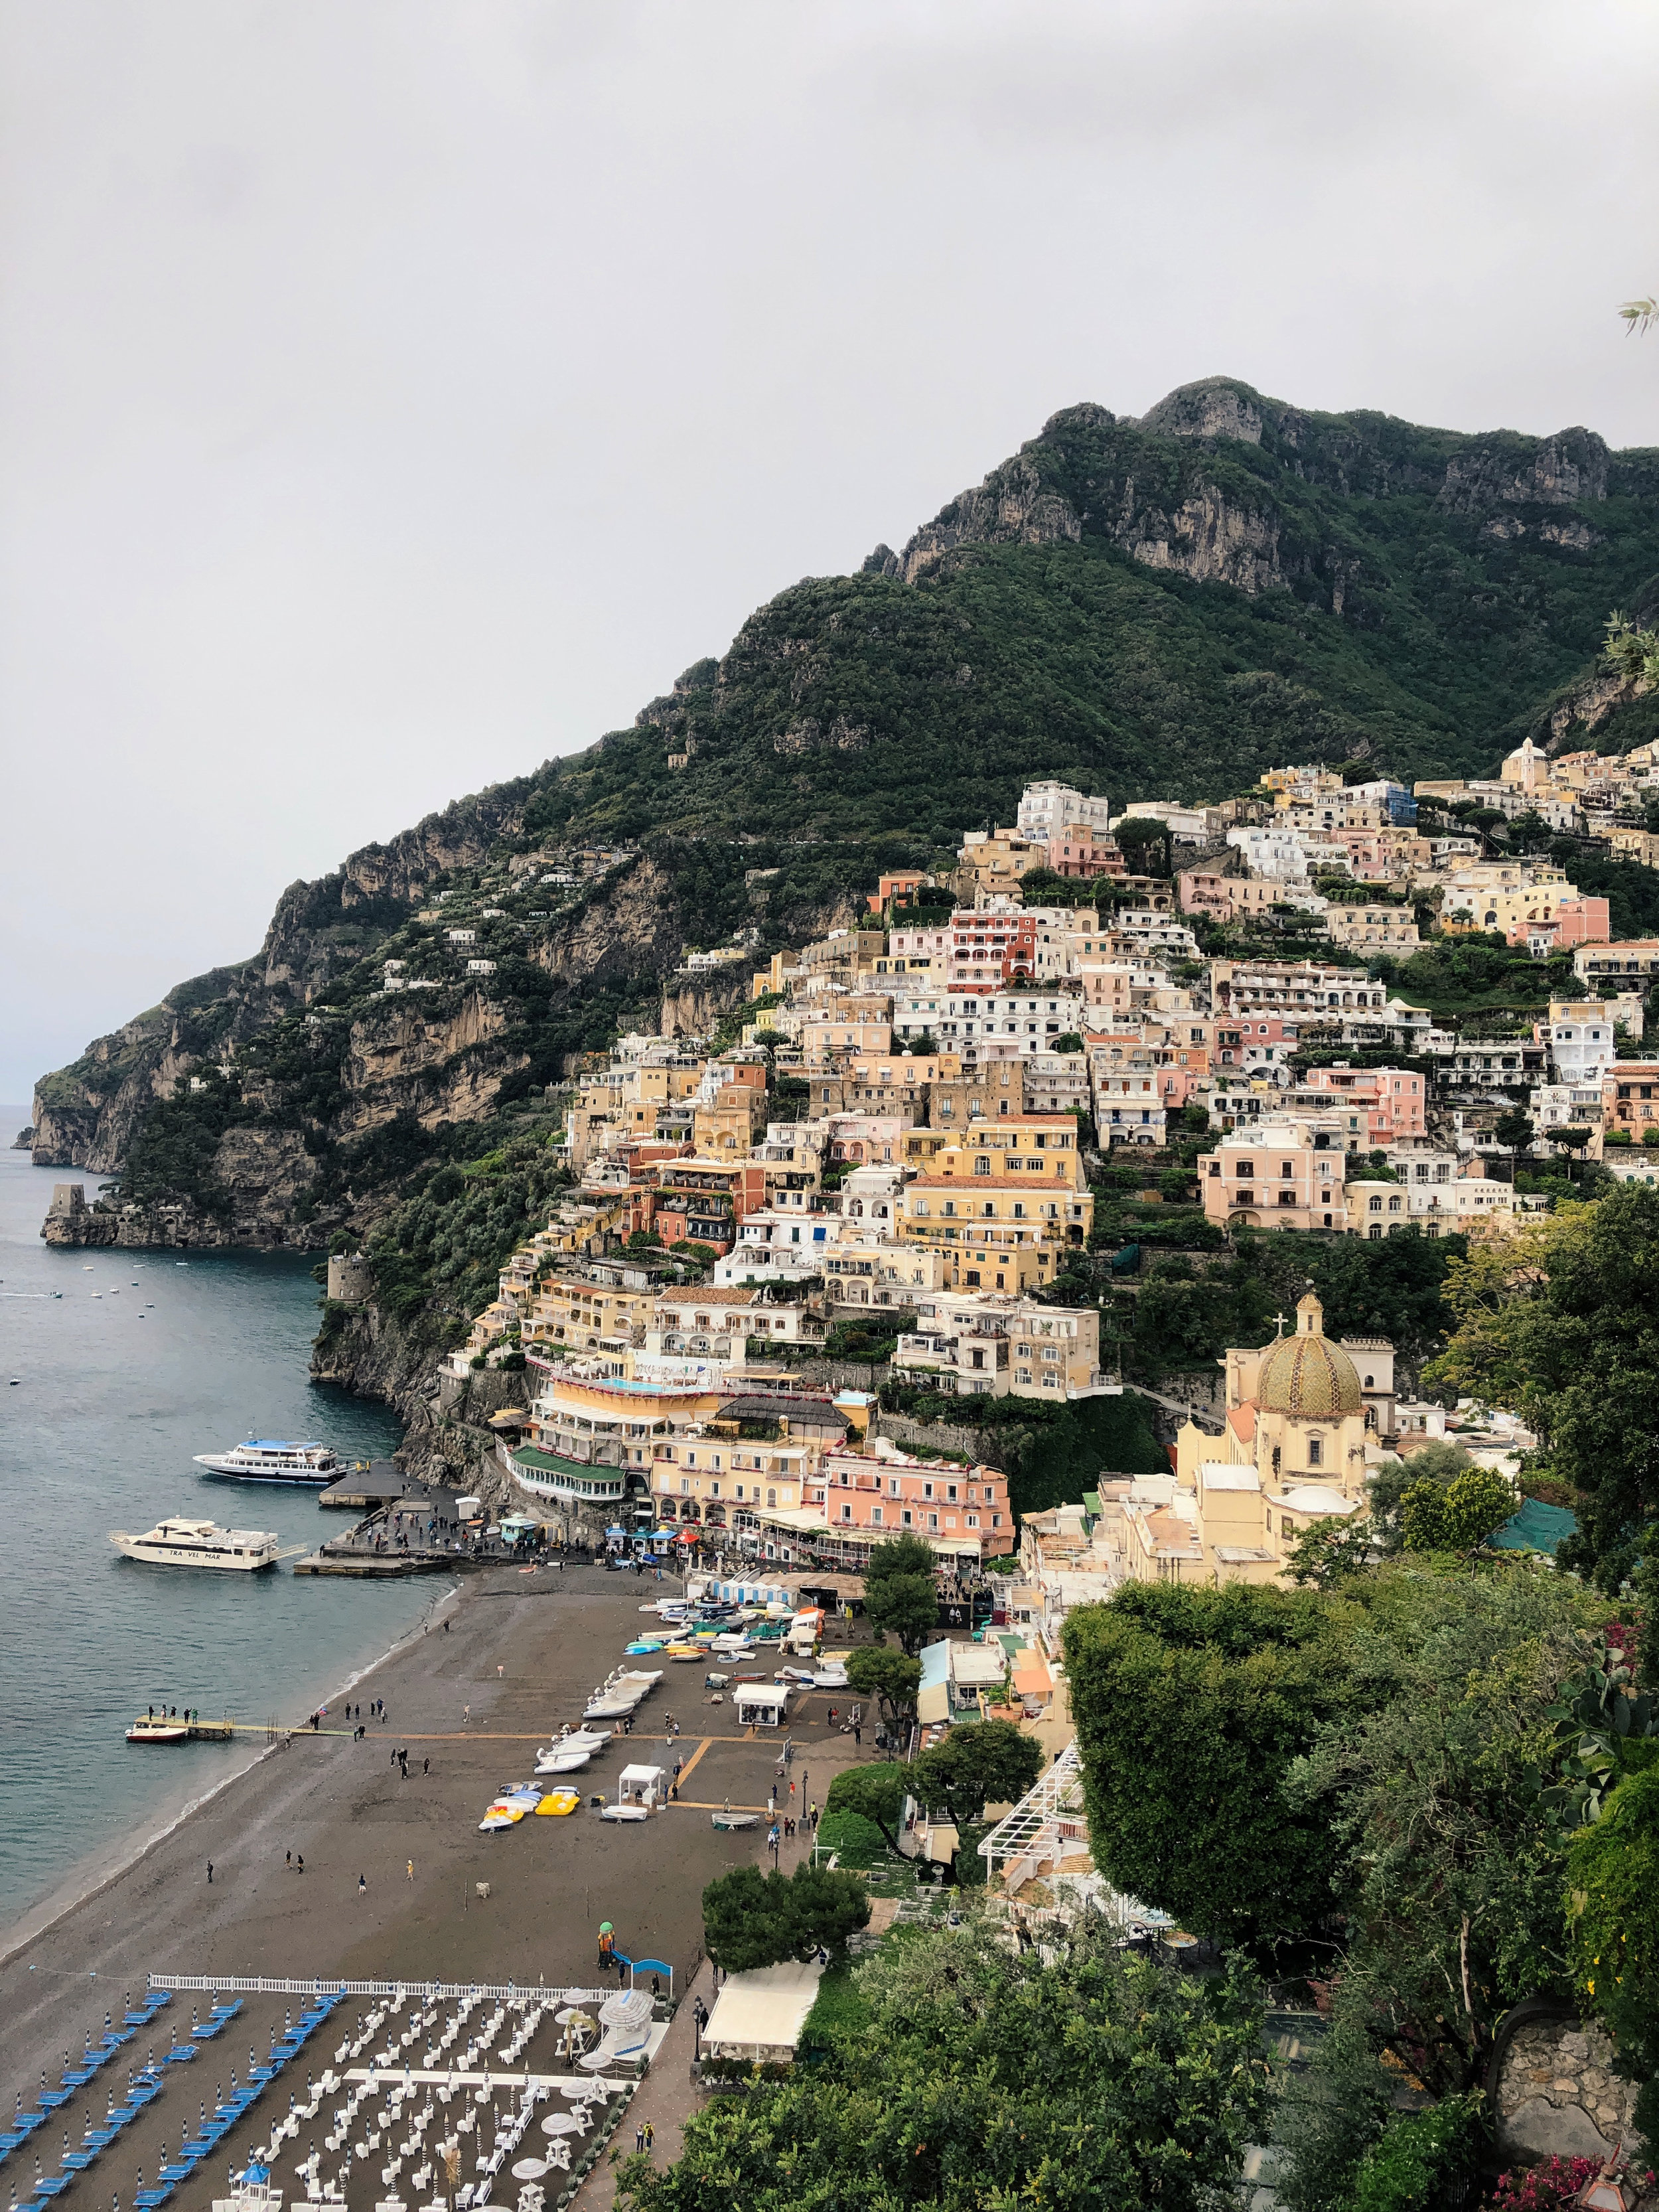 Cliffside view of Positano